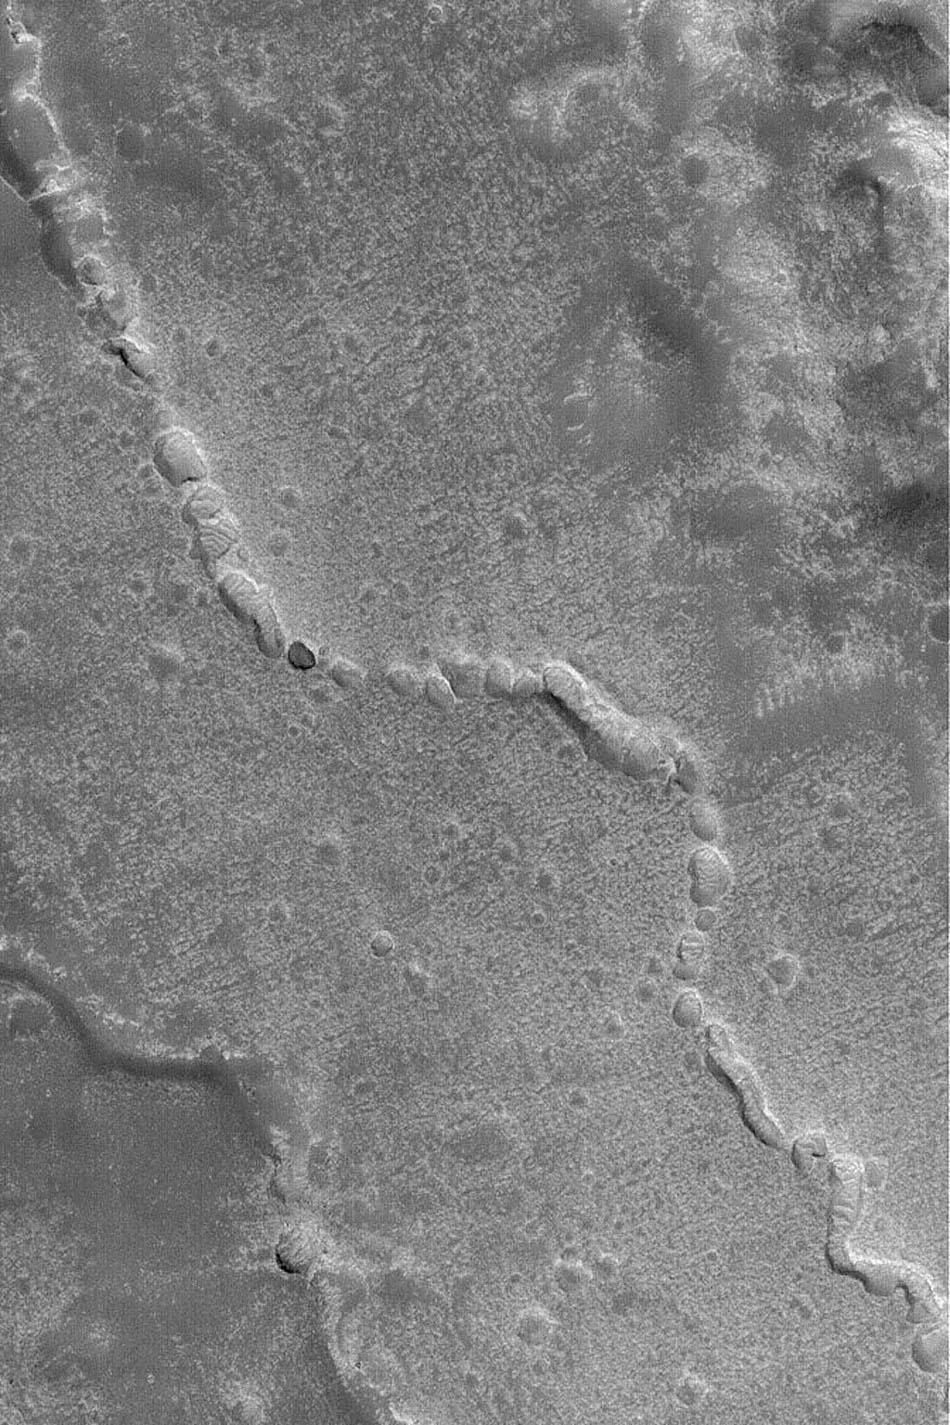 NASA's Mars Global Surveyor shows evidence of a collapsed lava tube (or other form of subterranean channel) on the plains northwest of the Elysium volcanoes on Mars.